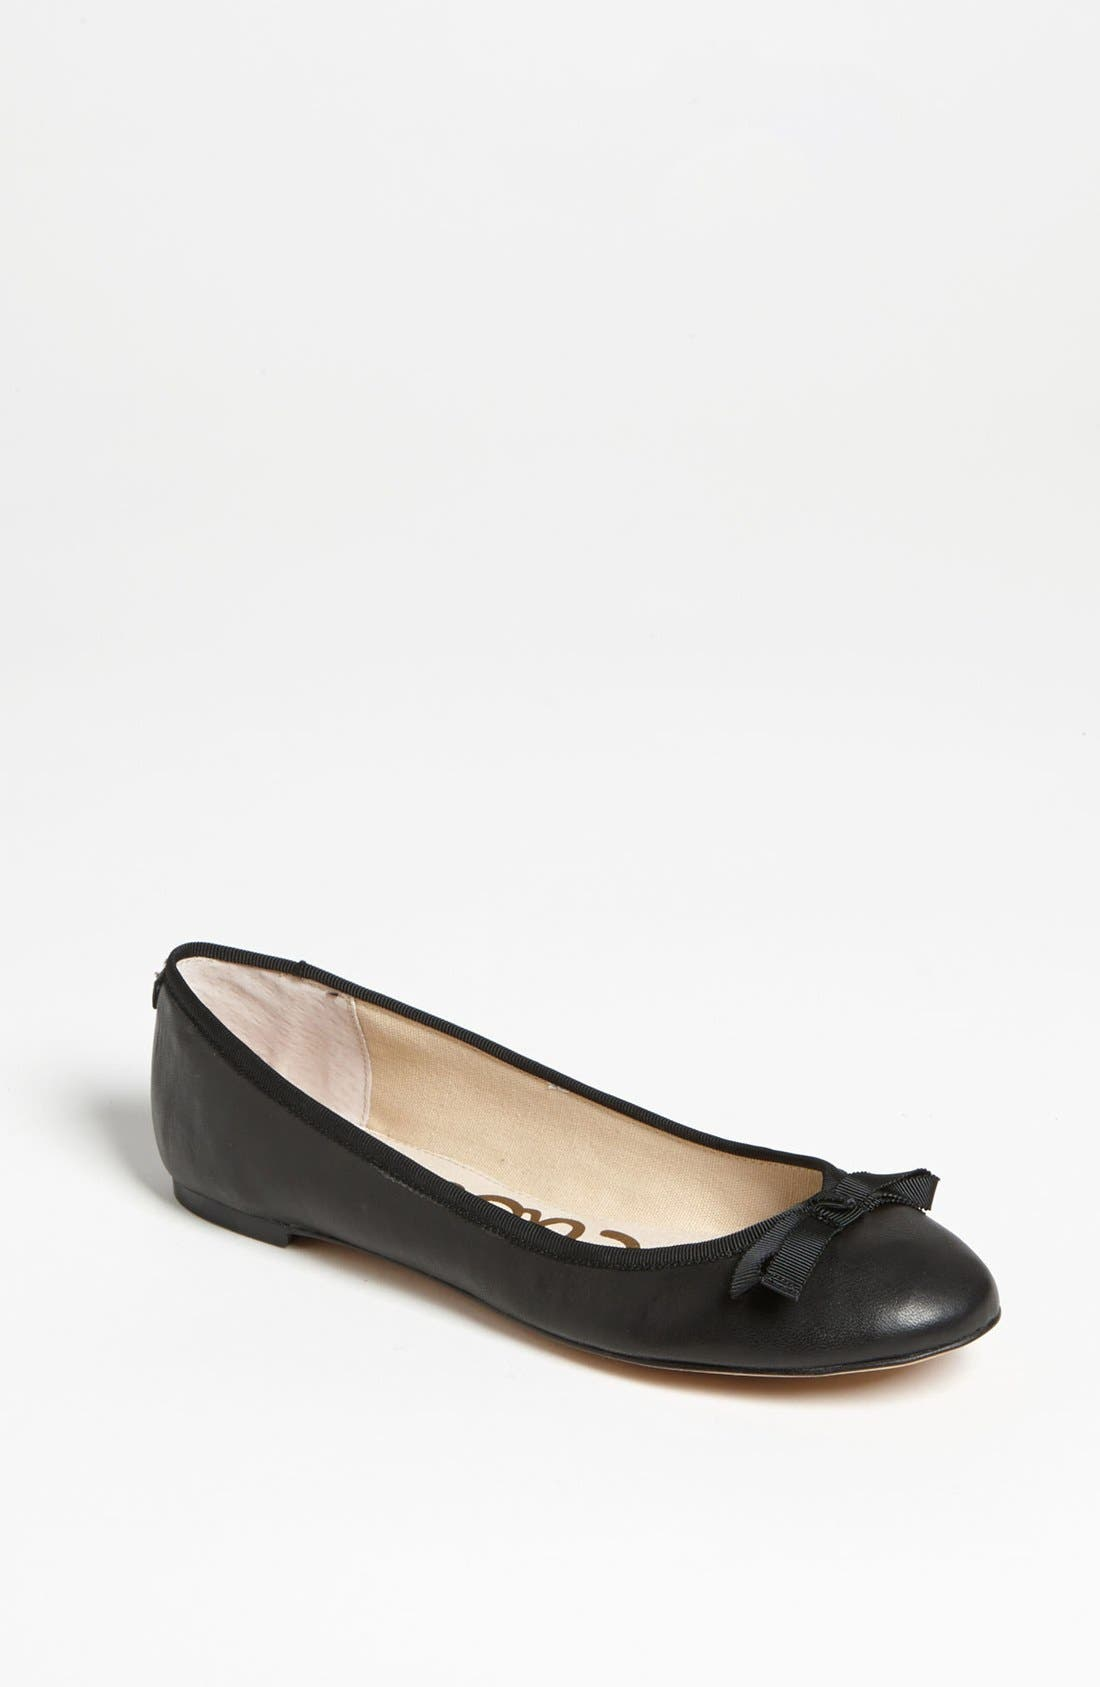 Main Image - Sam Edelman 'Milly' Flat